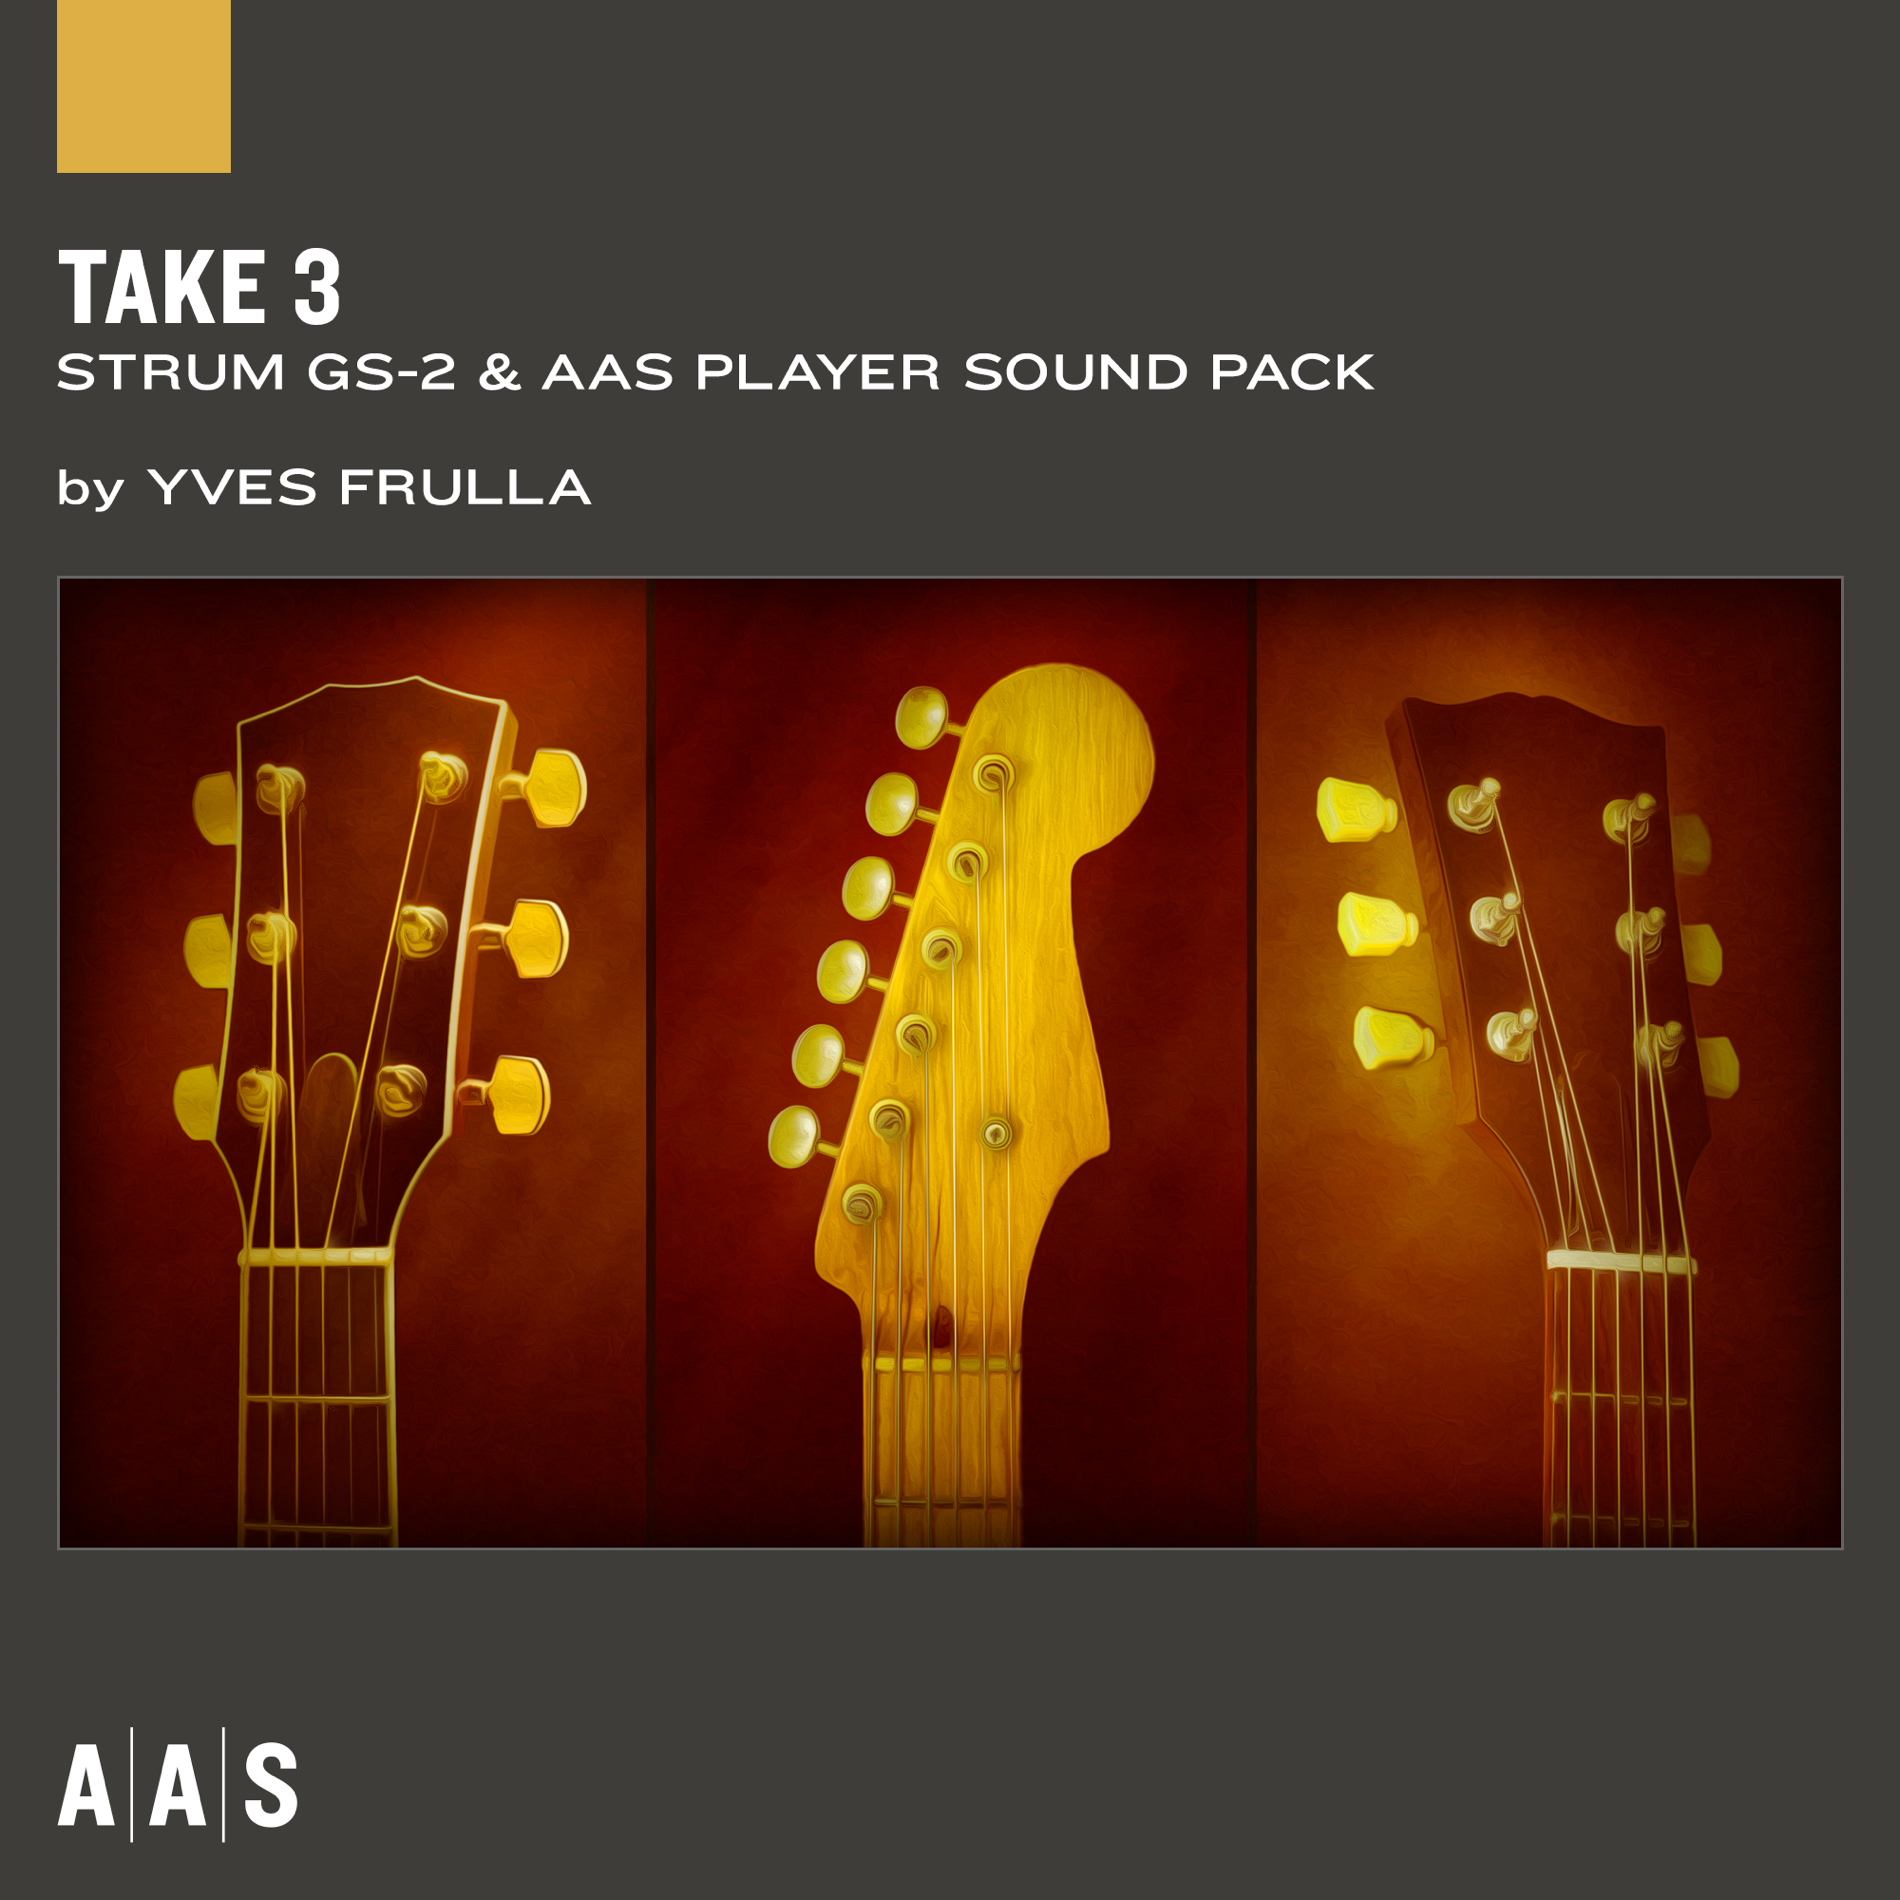 STRUM GS Sound Banks:TAKE 3